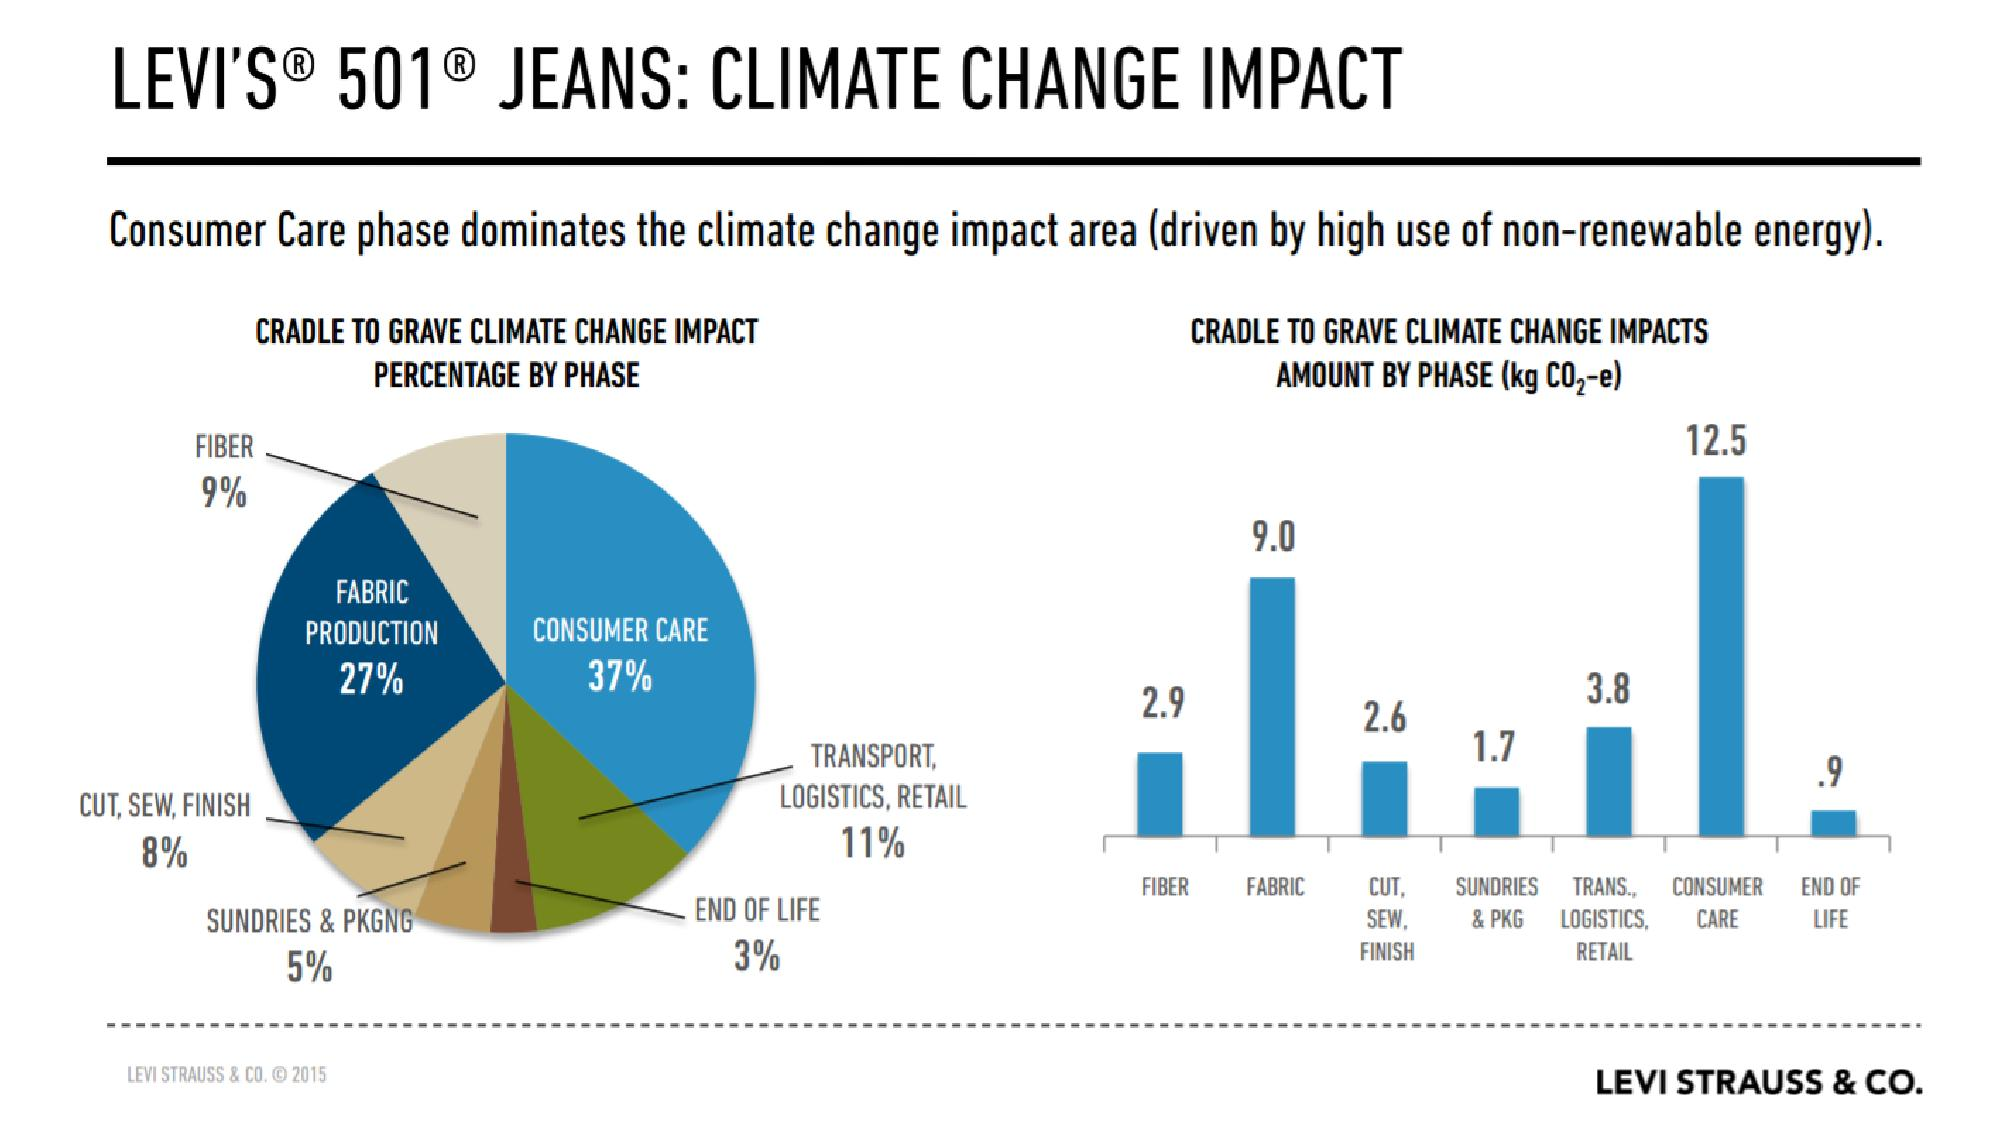 Consumer care is the primary driver of climate change impact